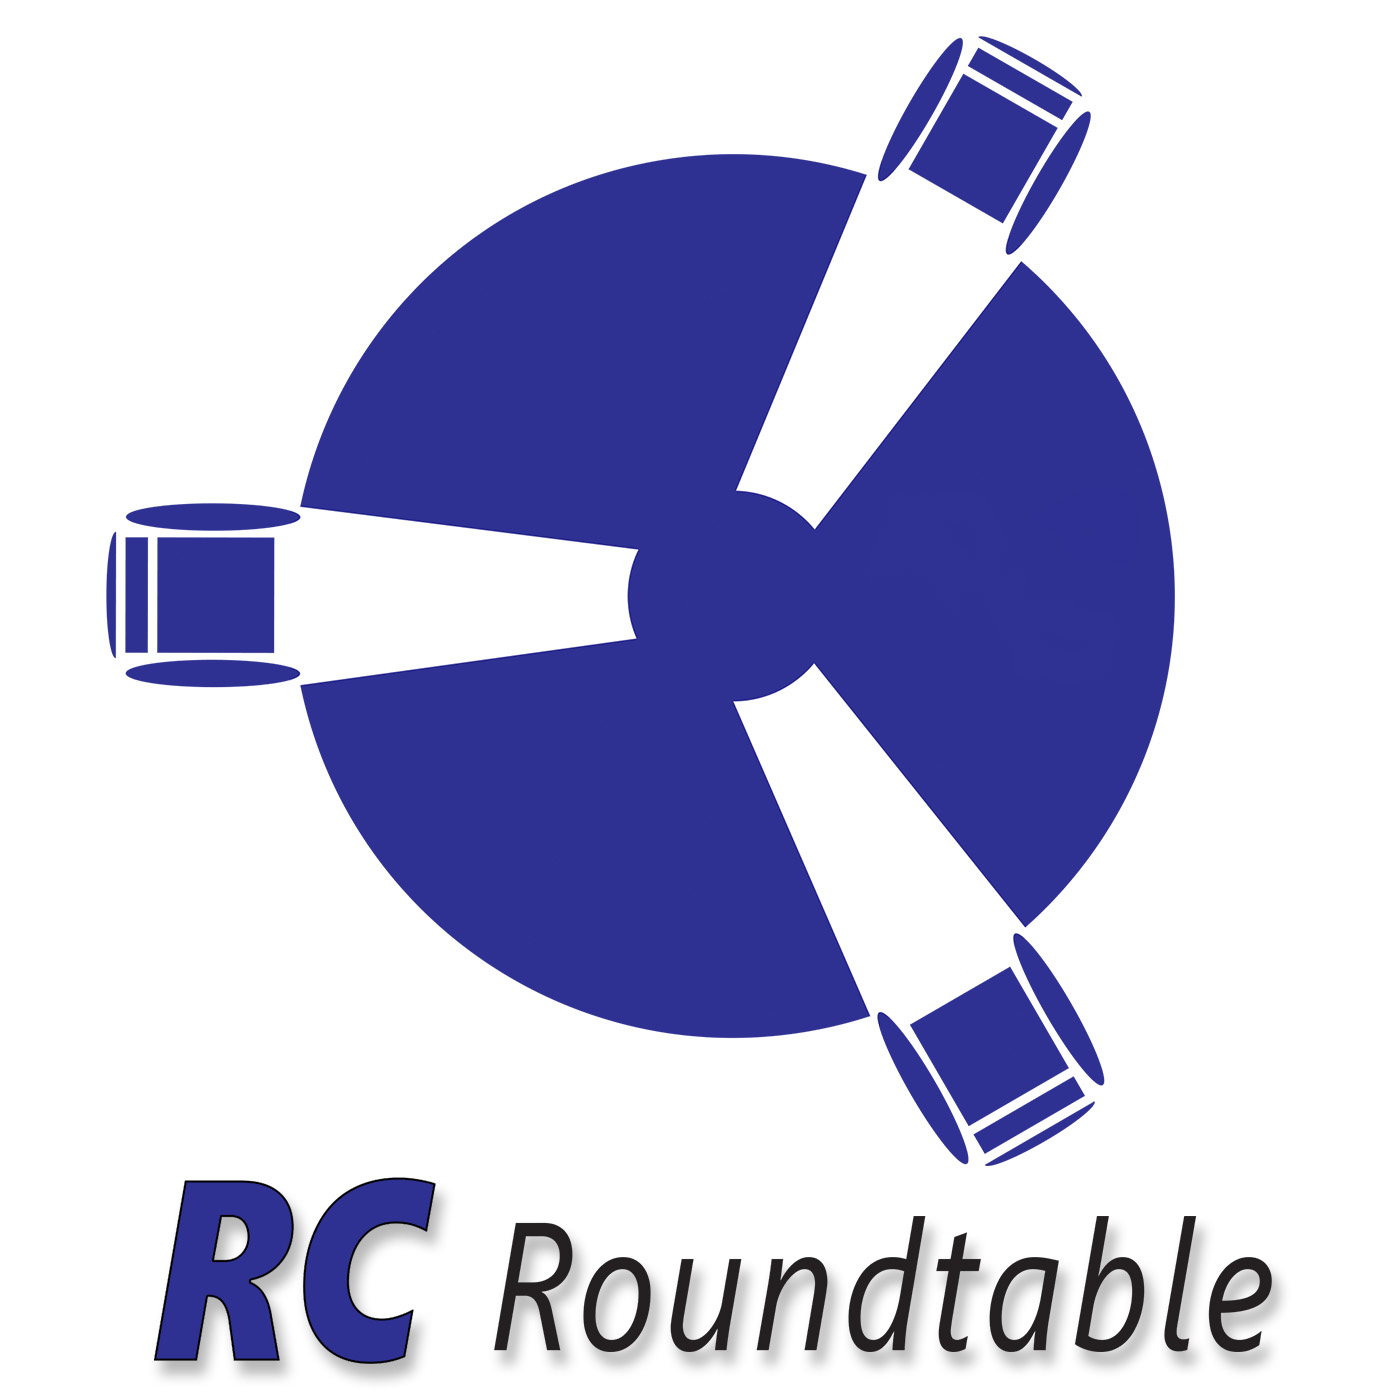 RC Roundtable